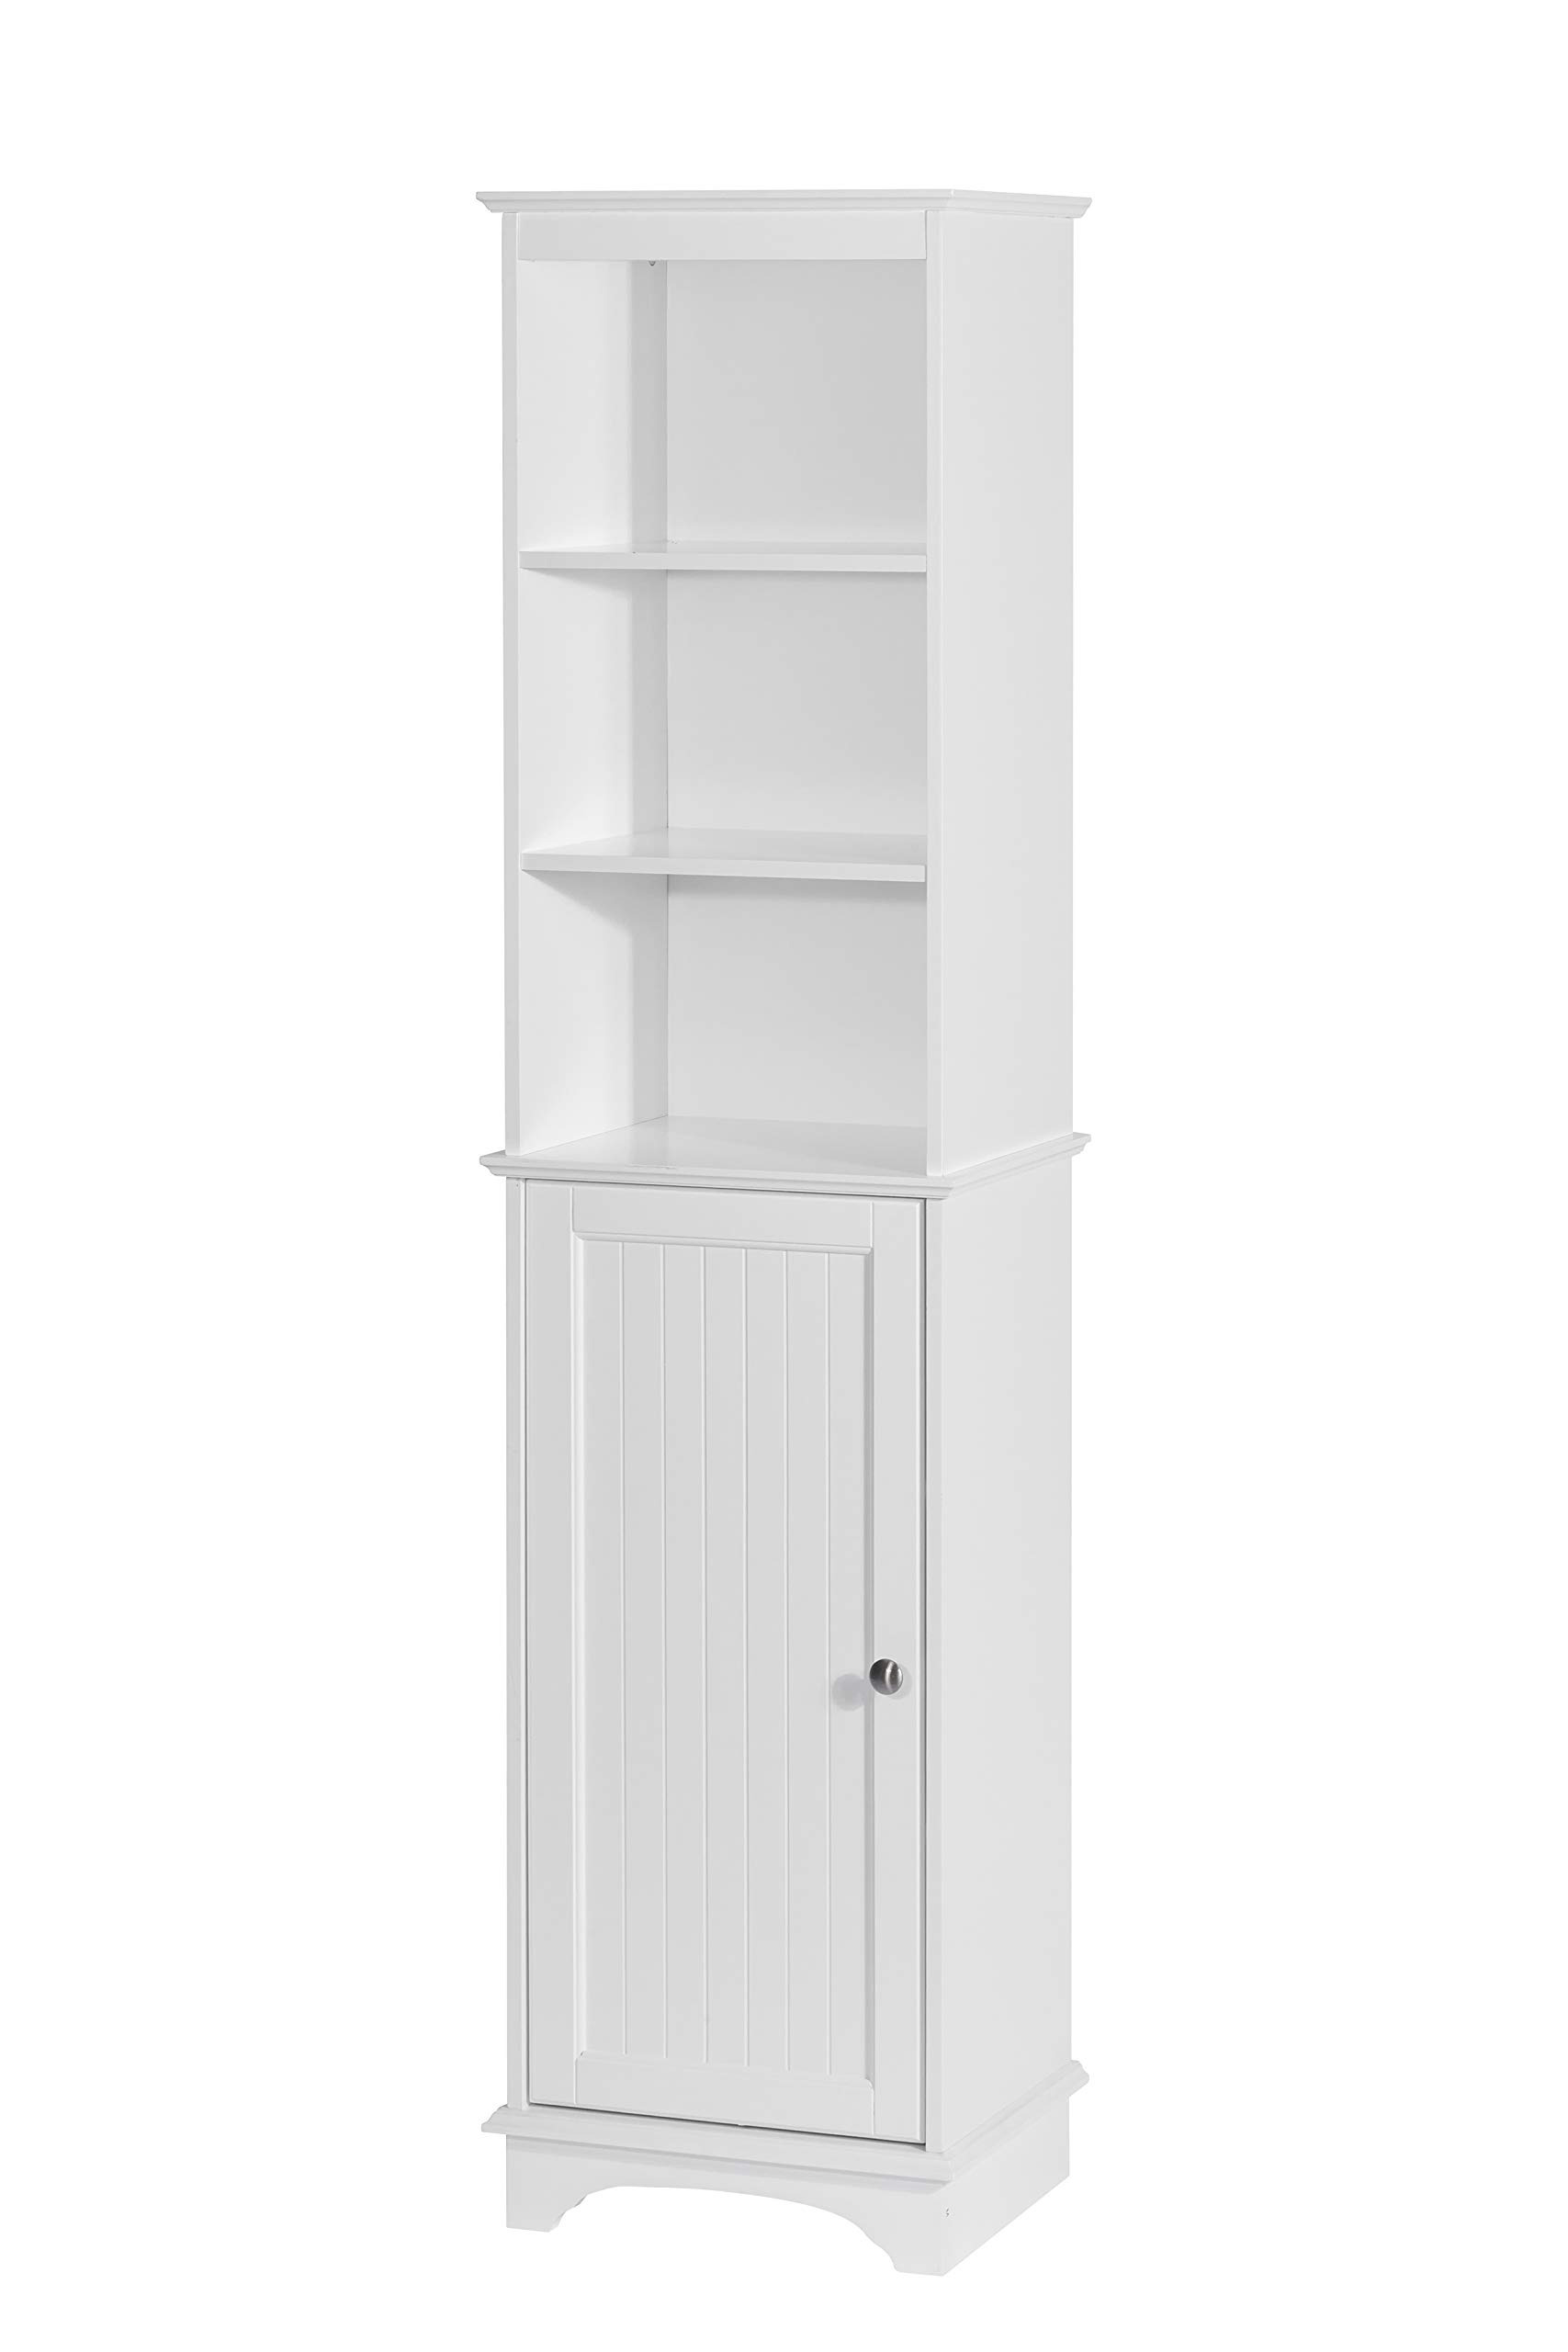 Free Standing Storage Cabinets with Doors Lovely Spirich Home Freestanding Storage Cabinet with Three Tier Shelves Tall Slim Cabinet Free Standing Linen tower White Finish